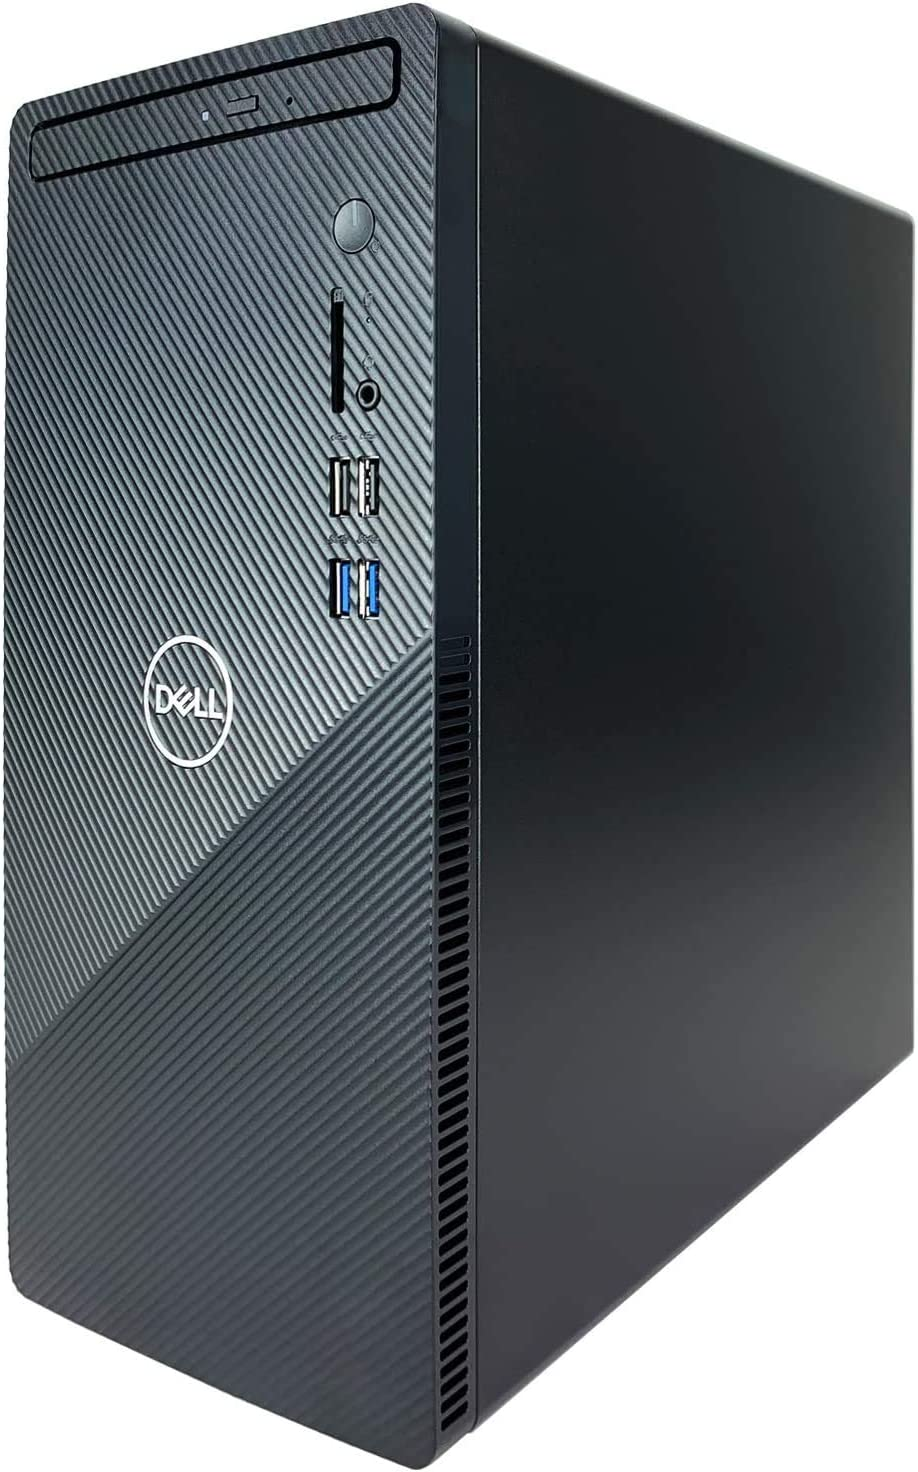 Dell Inspiron 3880 Desktop Computer Intel Core i5-10th Gen - 6 Core - 1TB HDD - 8GB – Intel UHD Graphics – Windows 10 Home - New